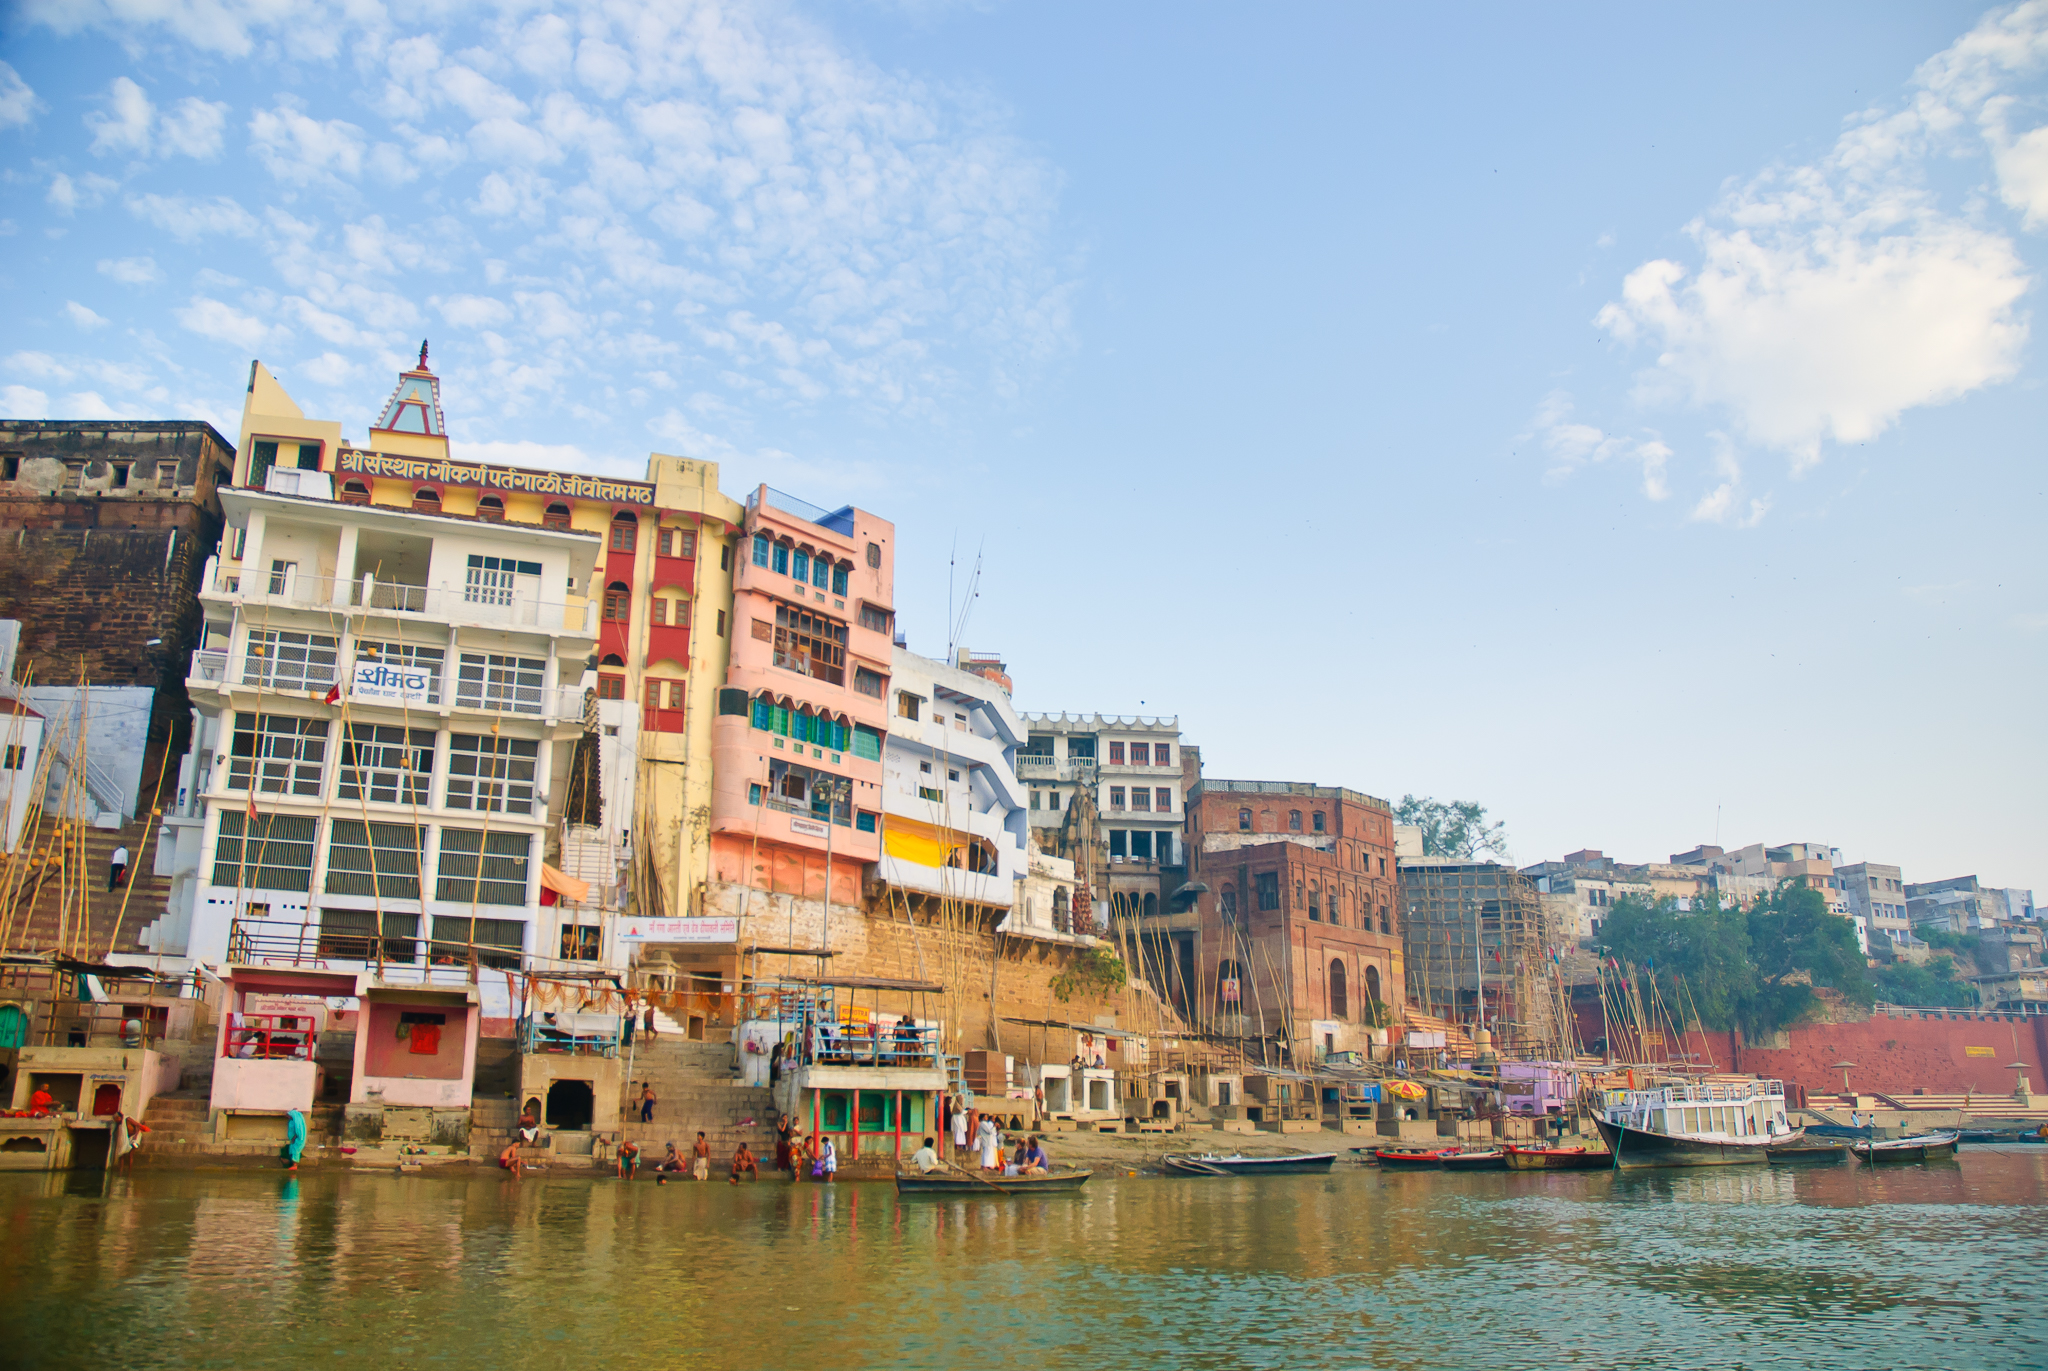 Two weeks of traveling in India – My first visit to Asia